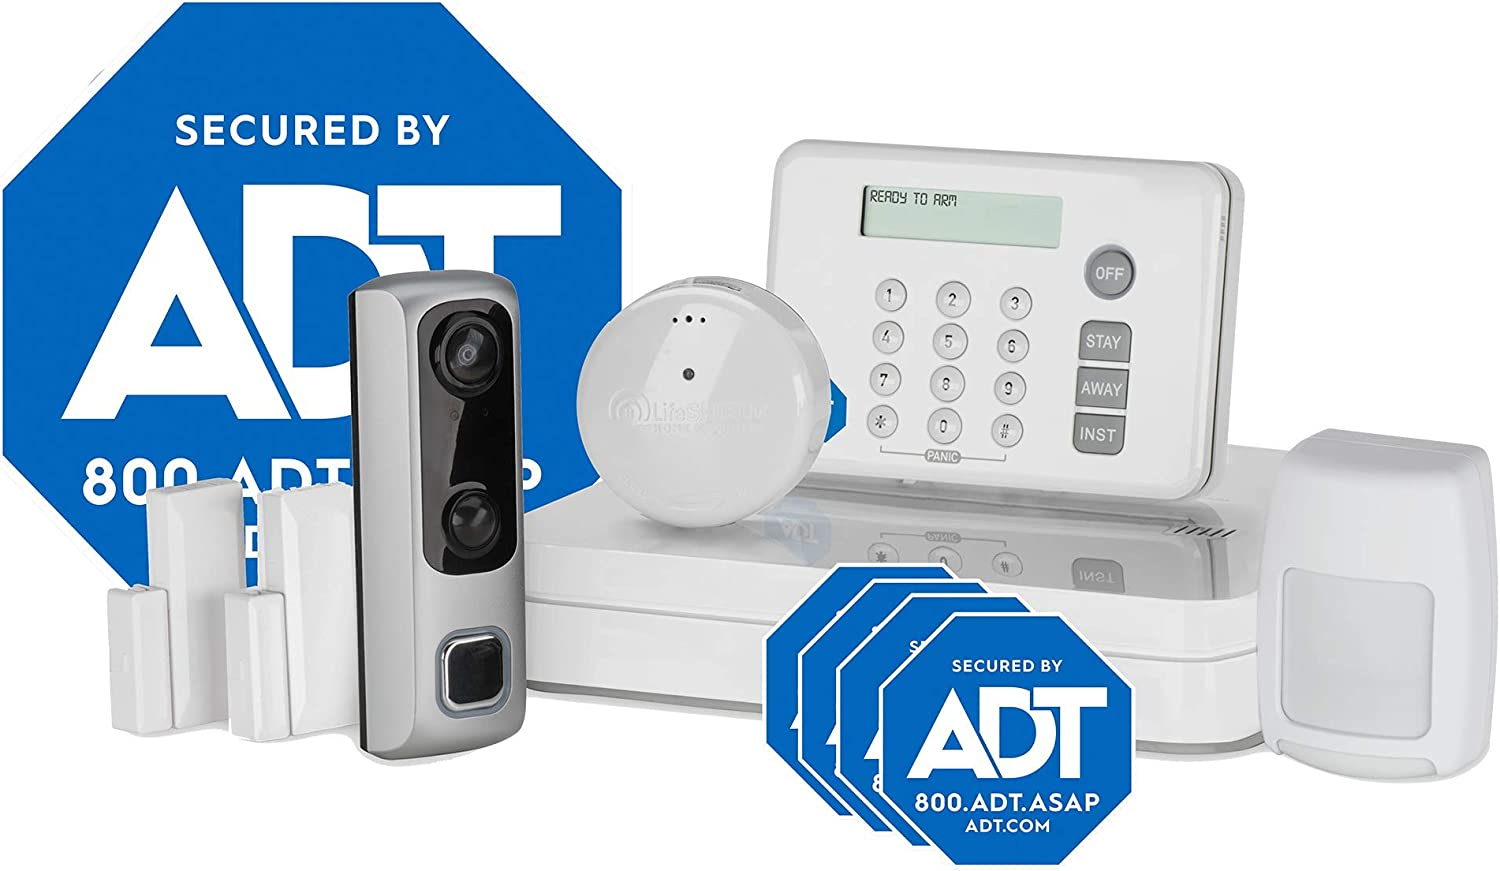 ADT DIY HD Video Doorbell Camera 8-Piece Smart Home Security System - Optional 24/7 Monitoring - No Contract - Wi-Fi Enabled - Alexa Compatible